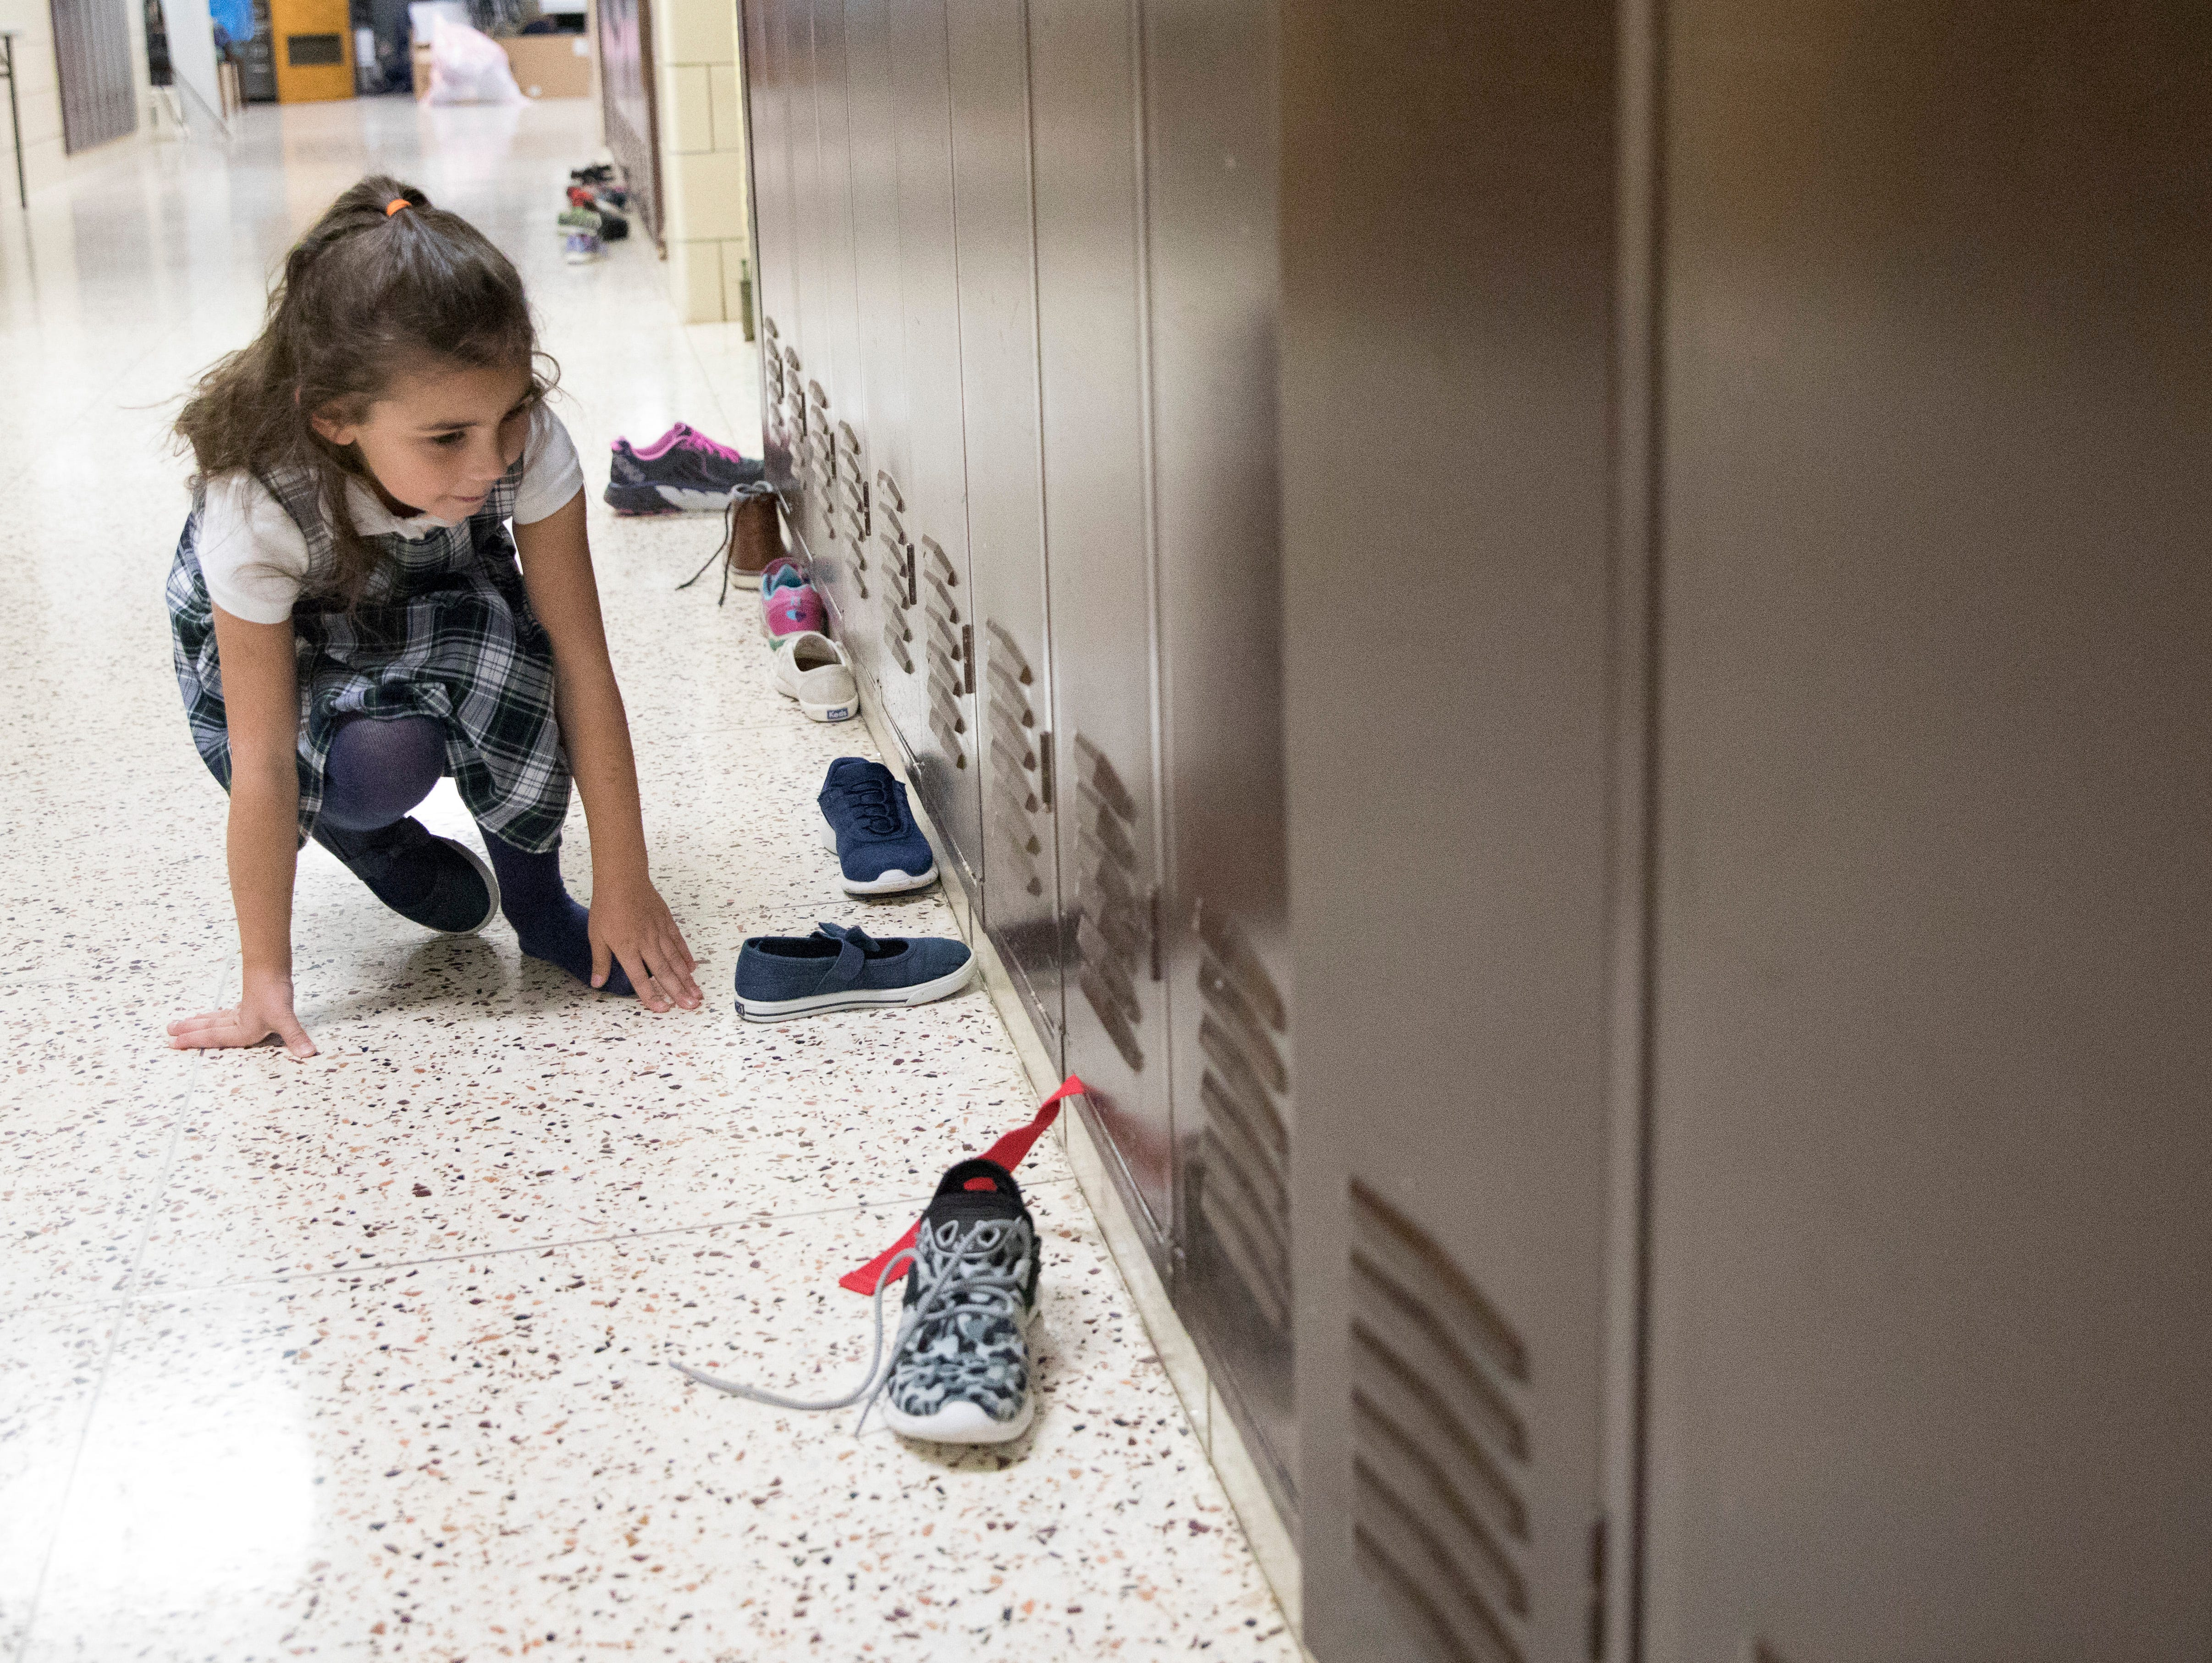 Anaya Tedesco carefully places her shoes in the hallway outside of class as she and other students wait for a special gift from St. Nicholas at Bishop Flaget Middle School the morning of December 6, 2018. Today, St. Nicholas is recognized as the originator of Santa Claus and was known for his generosity and love of children by using his inheritance to help the needy, sick, and suffering.